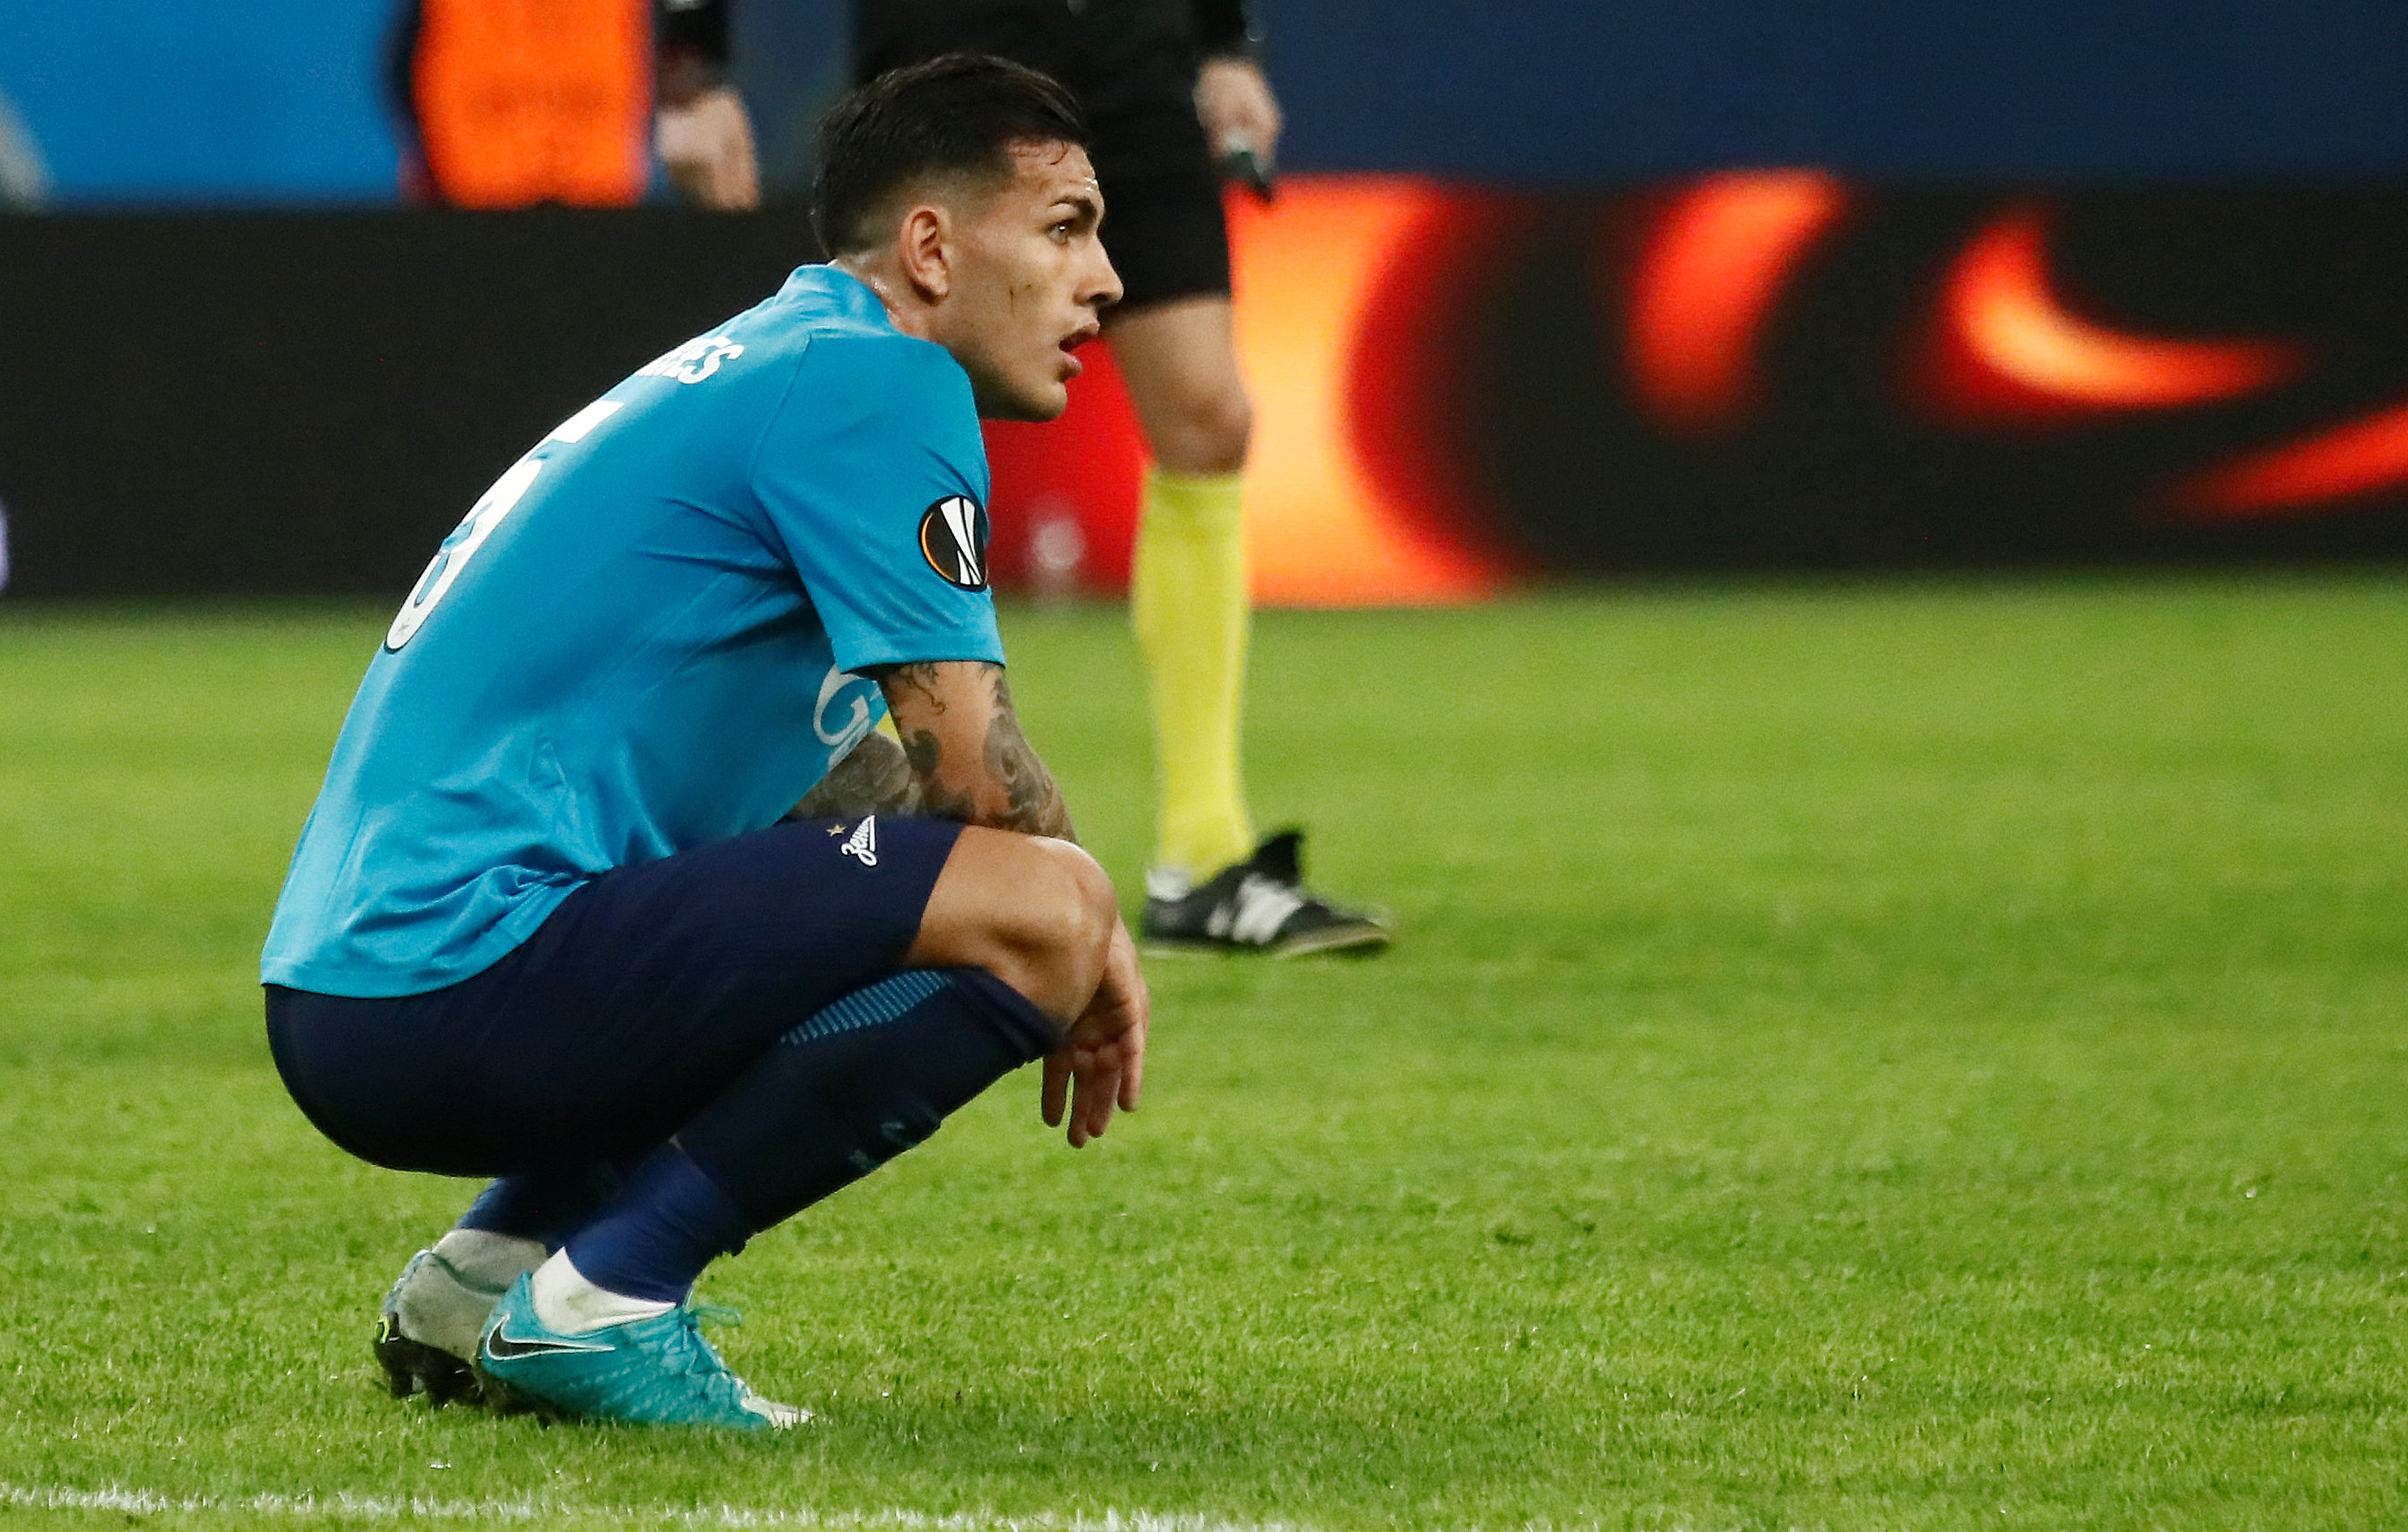 Players Chelsea could sign in January - Leandro Paredes